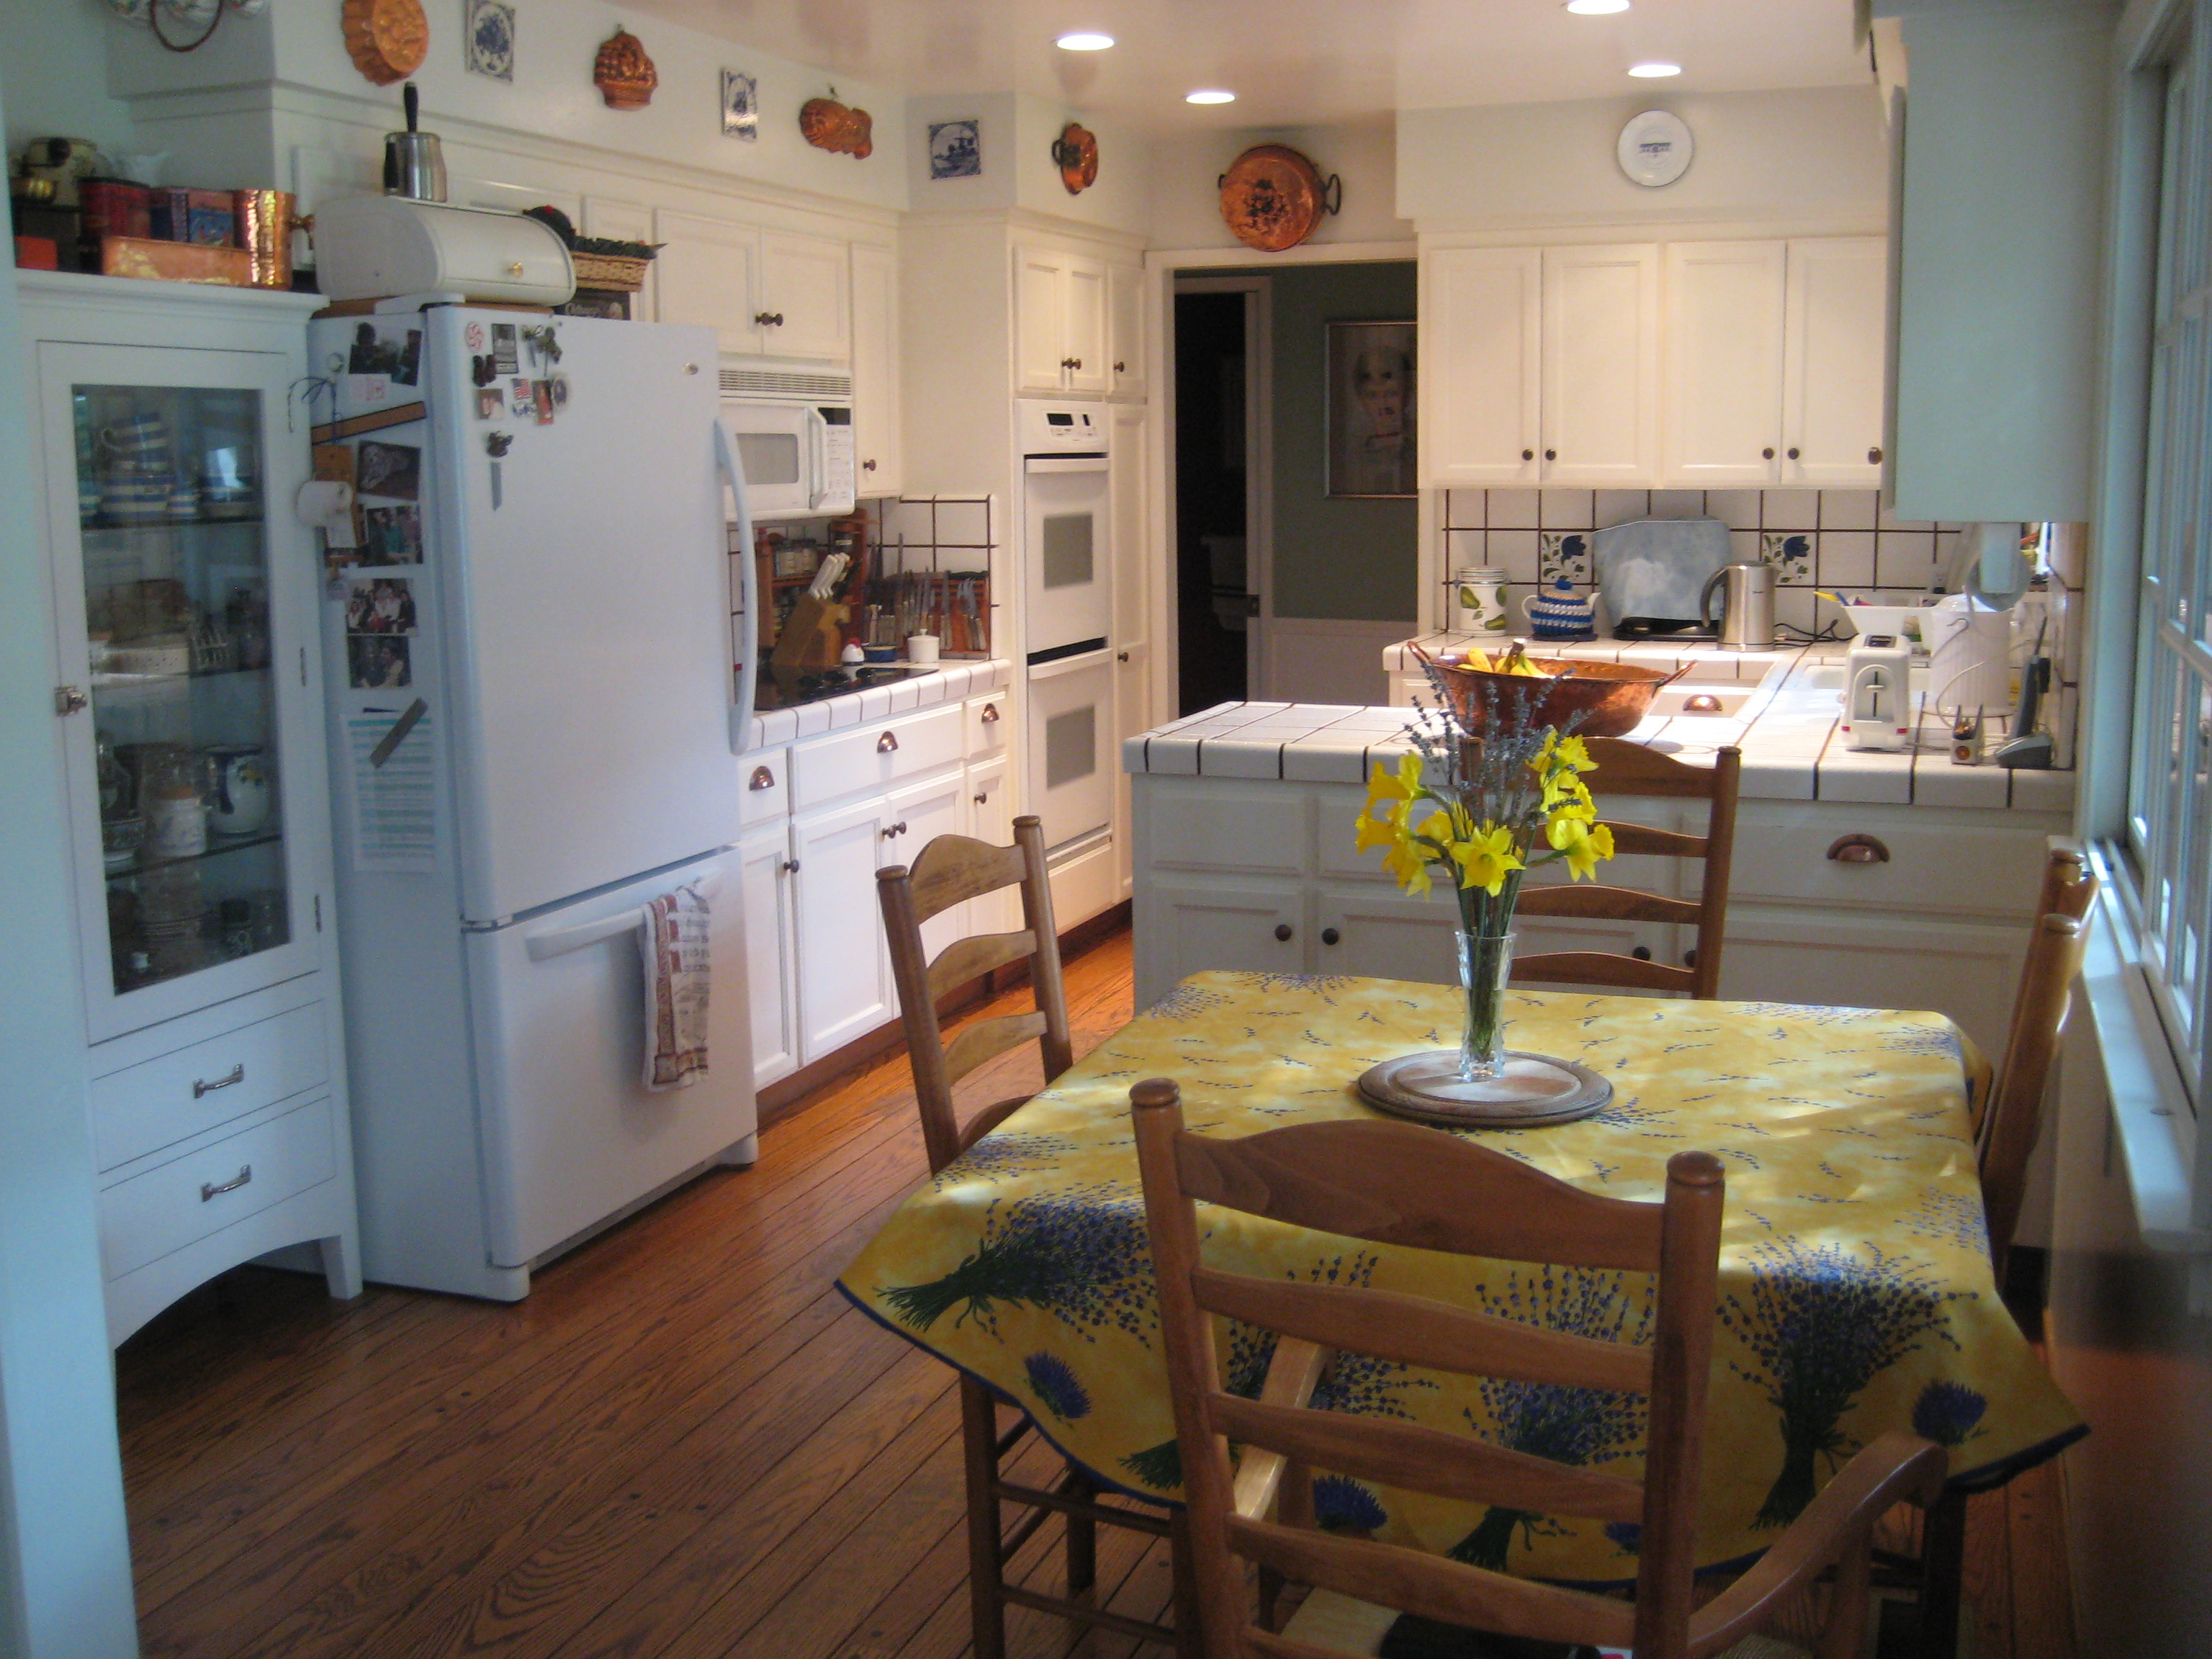 Kitchen renovation before and after kate collins interiors for Kitchen remodel before after